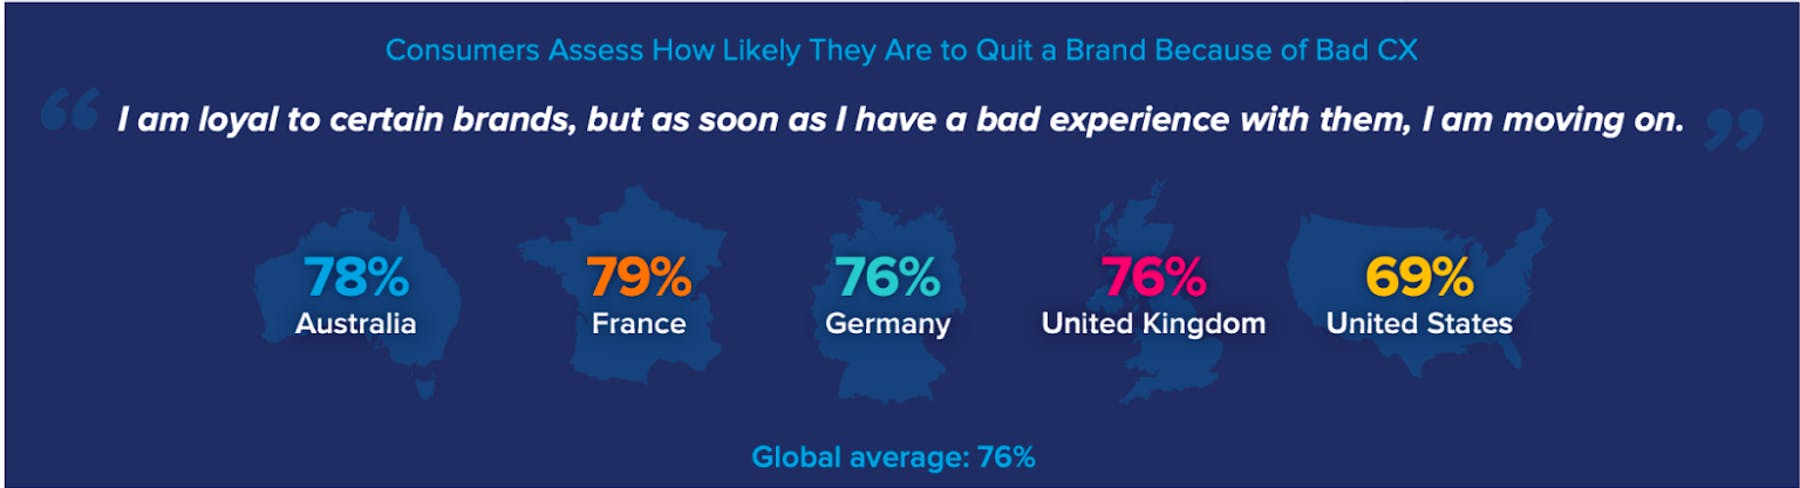 76% of consumers will switch brands due to poor CX